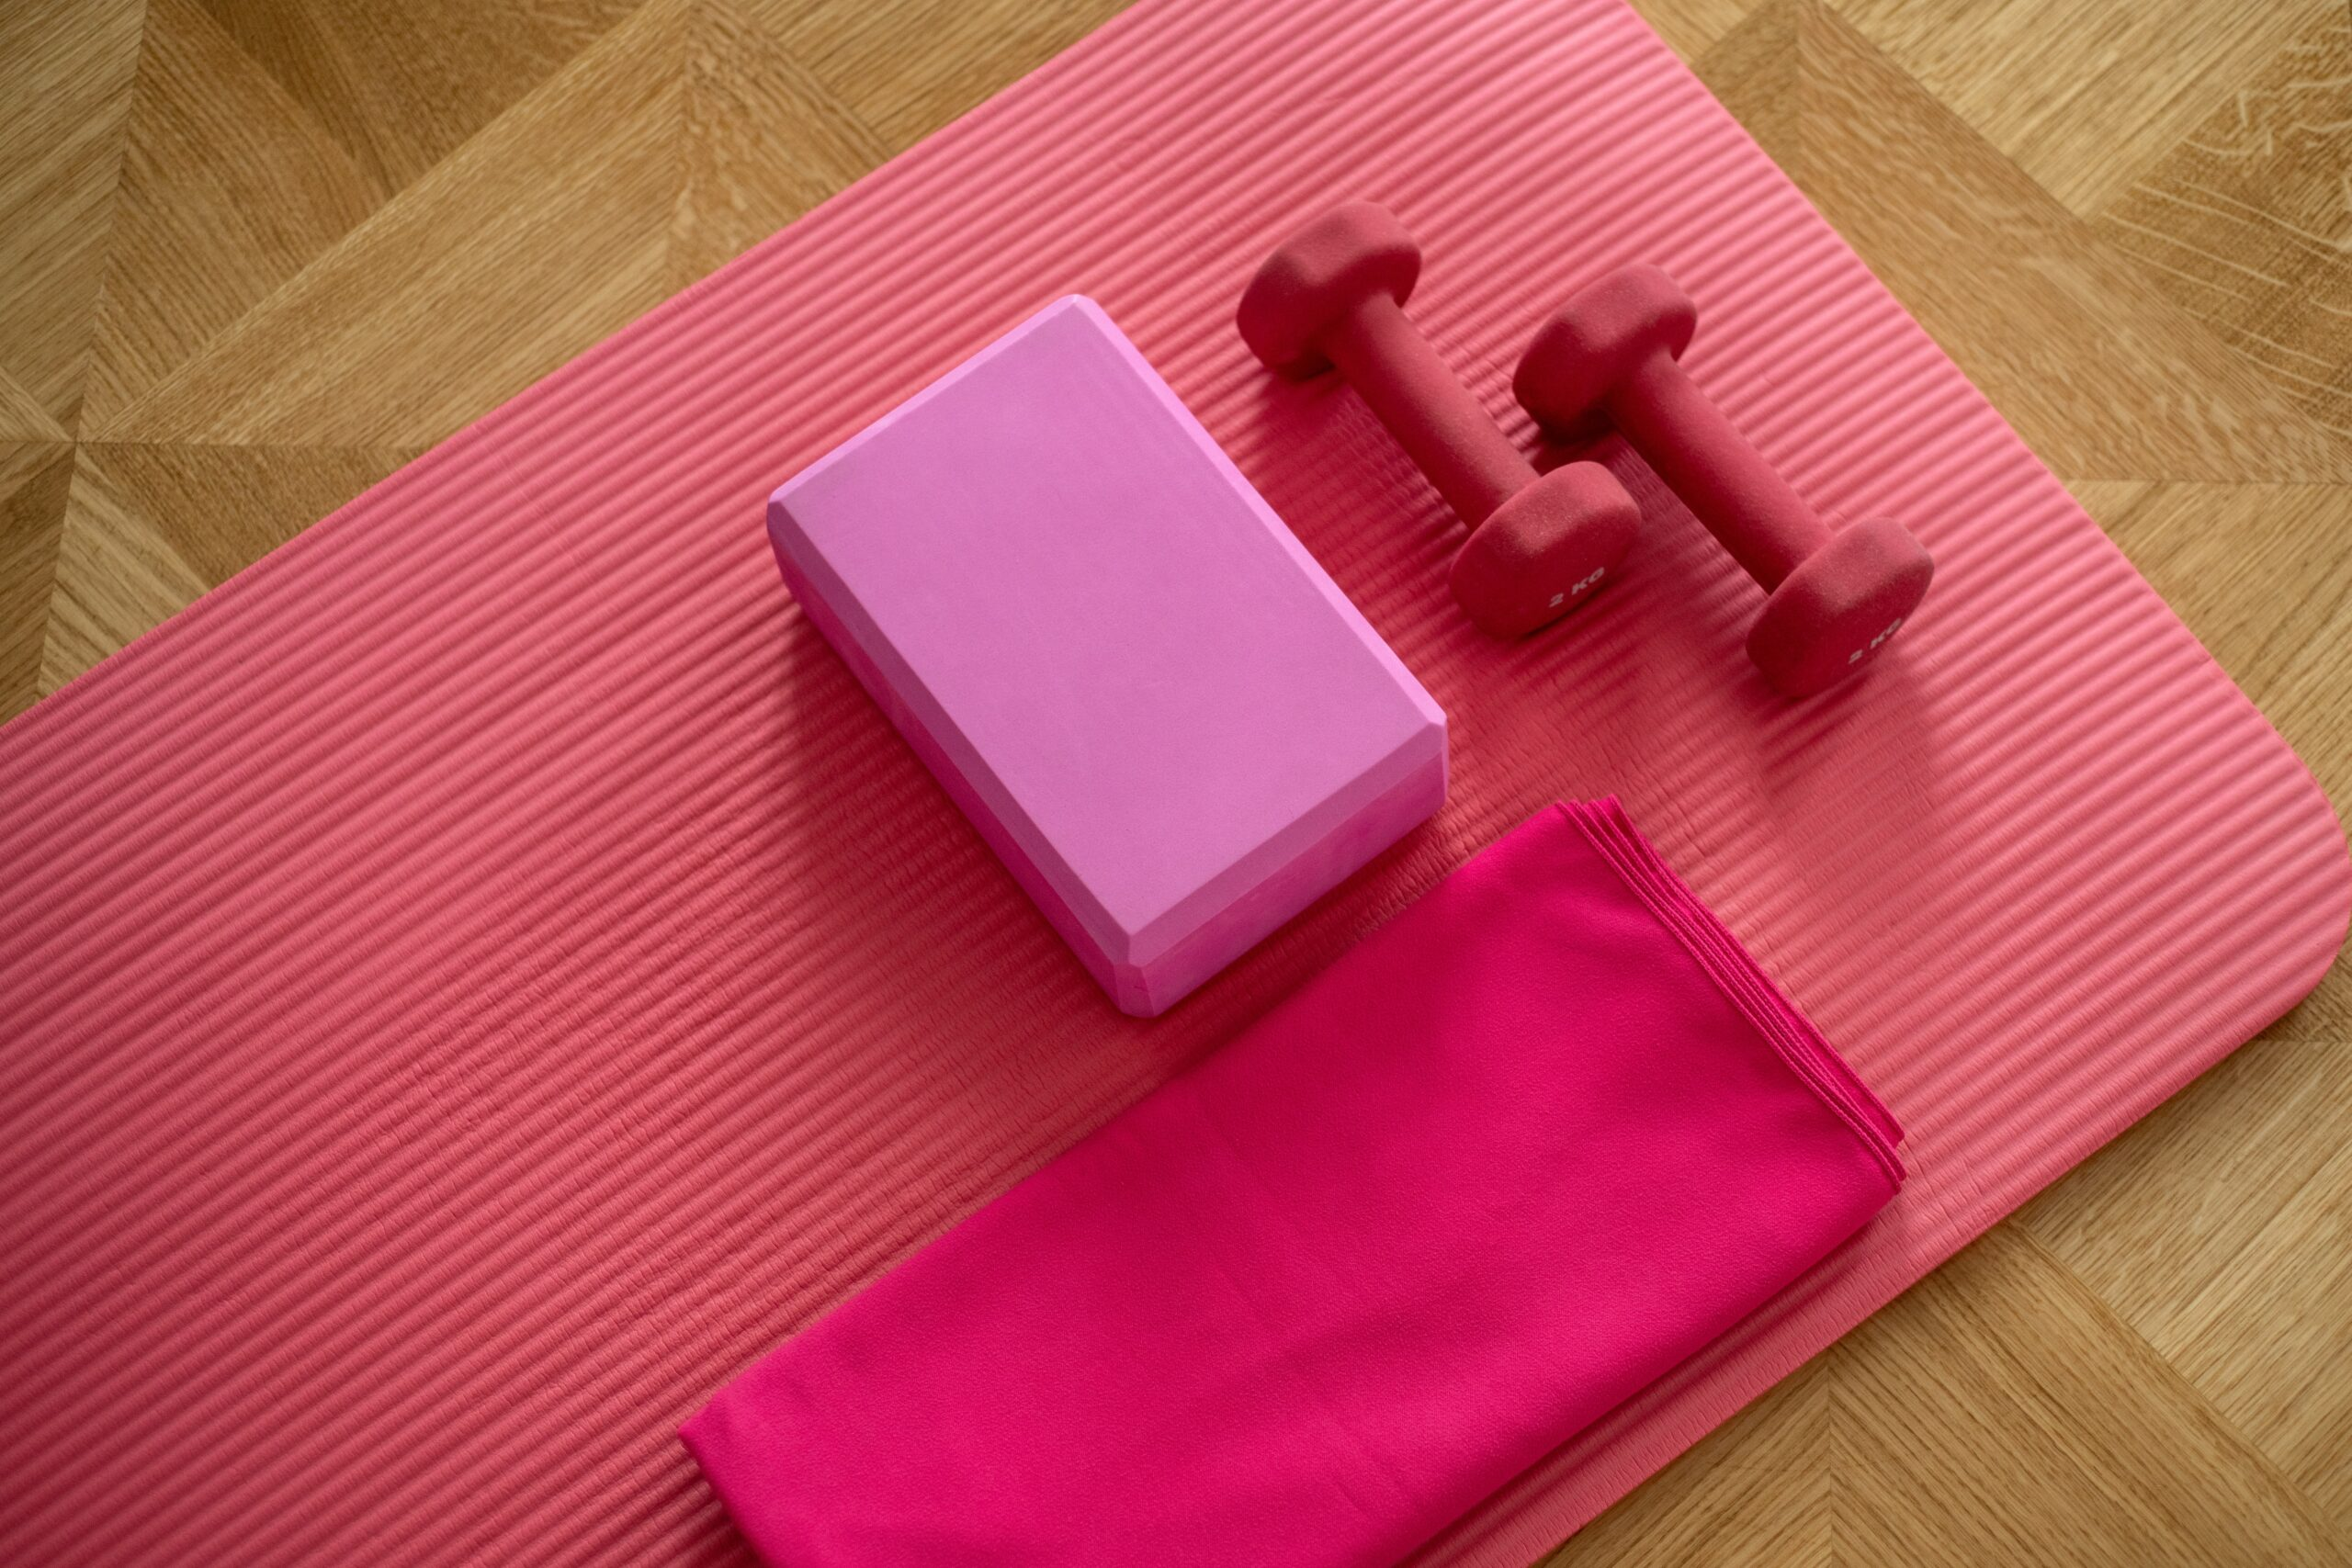 Pink weights and exercise mat